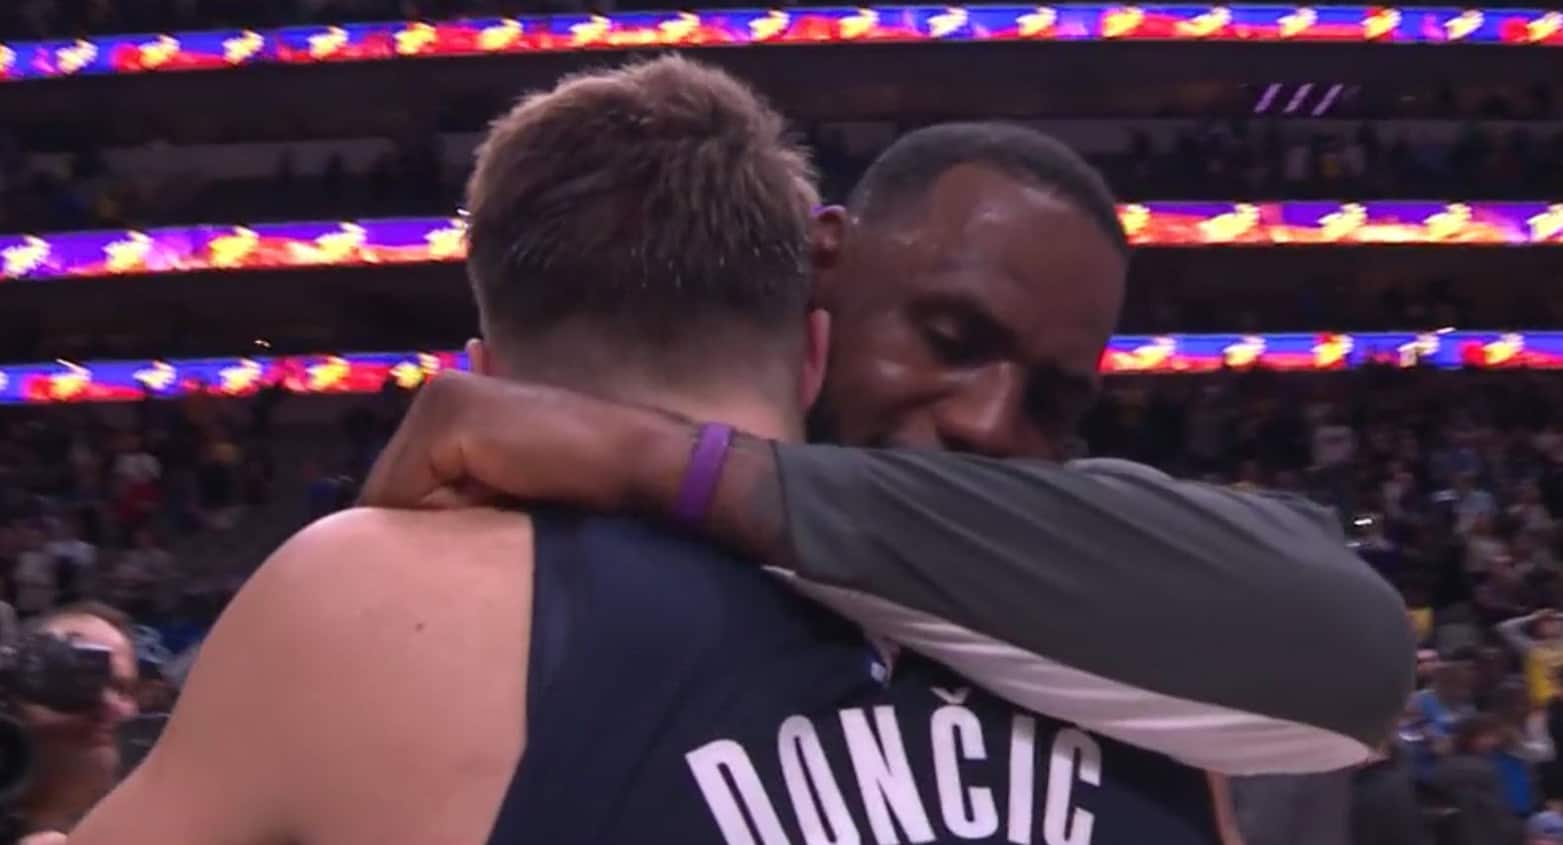 LeBron à Doncic : « You're a bad motherf***er »